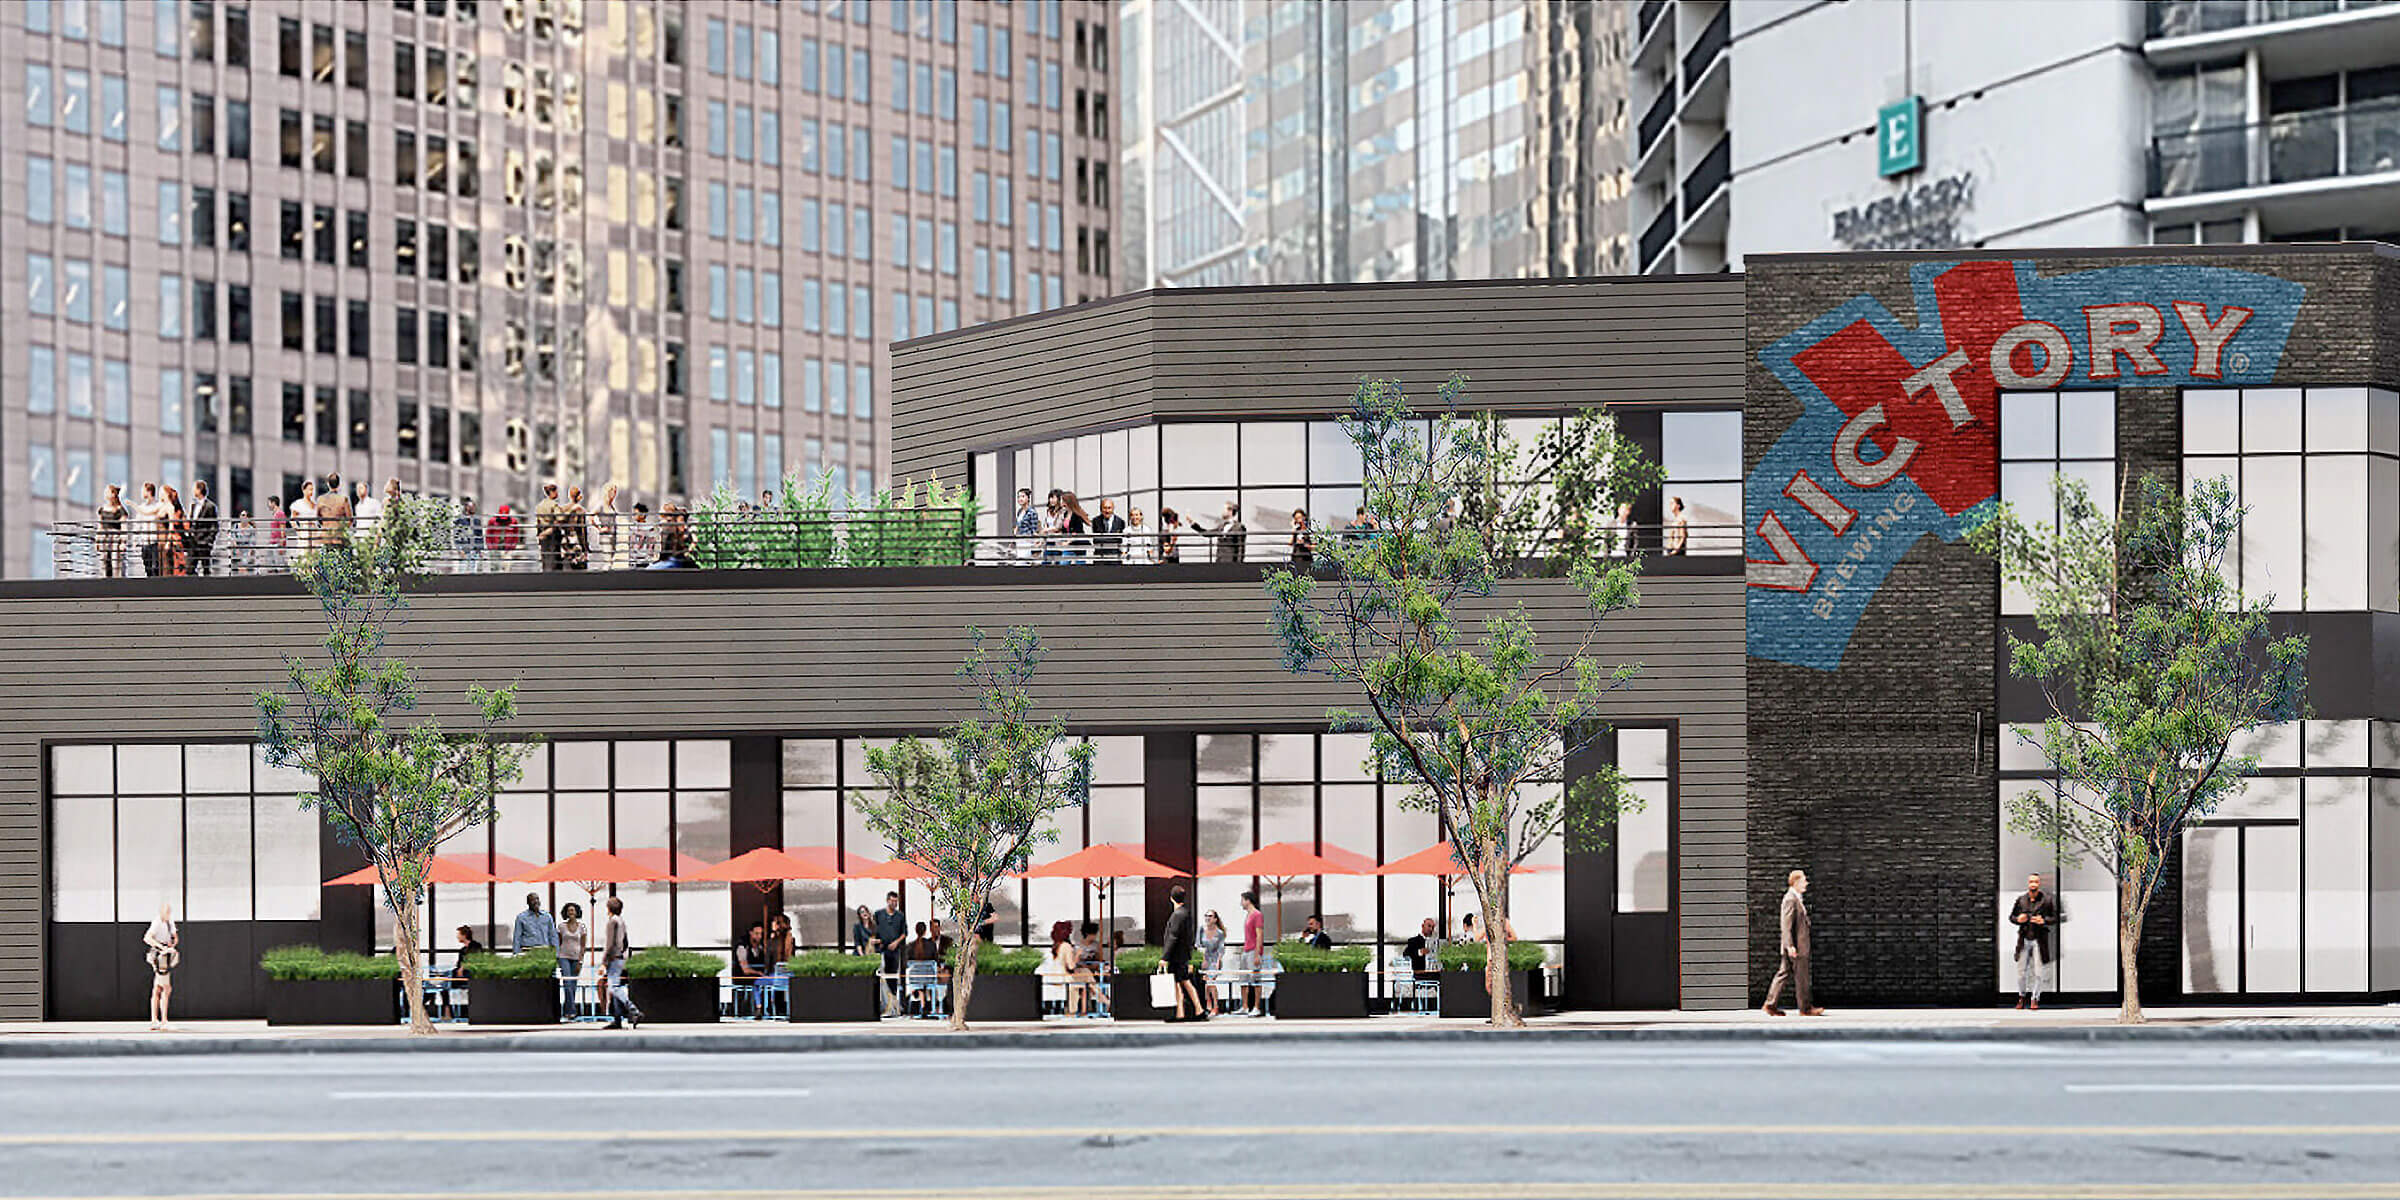 An architect's rendering of main façade of the new Victory taproom at 1776 Benjamin Franklin Parkway, Philadelphia, Pennsylvania.